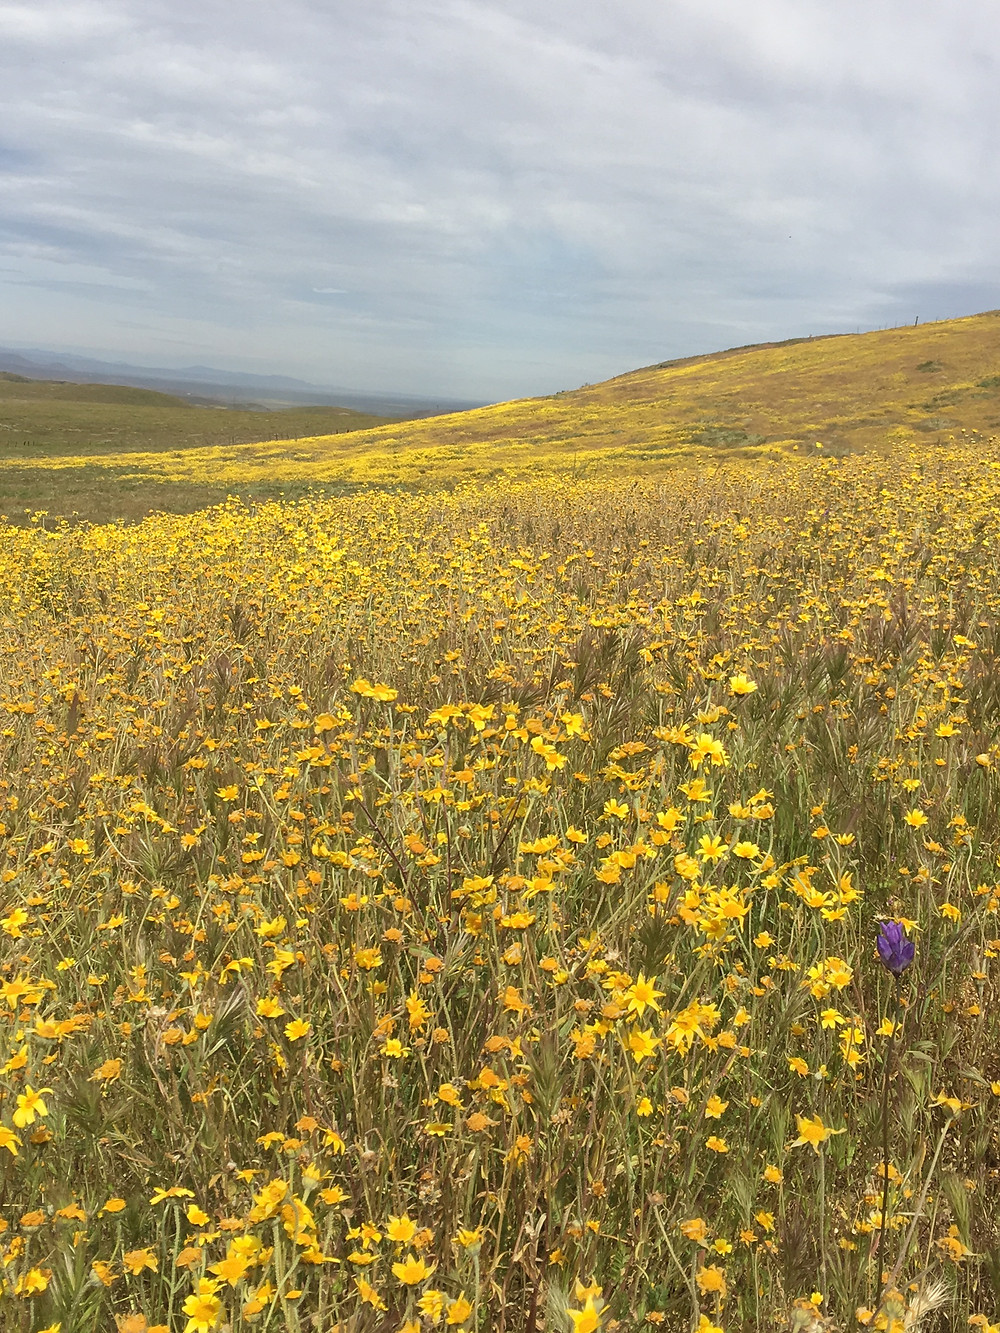 Fields of wildflowers at Carrizo Plain National Monument in Central California